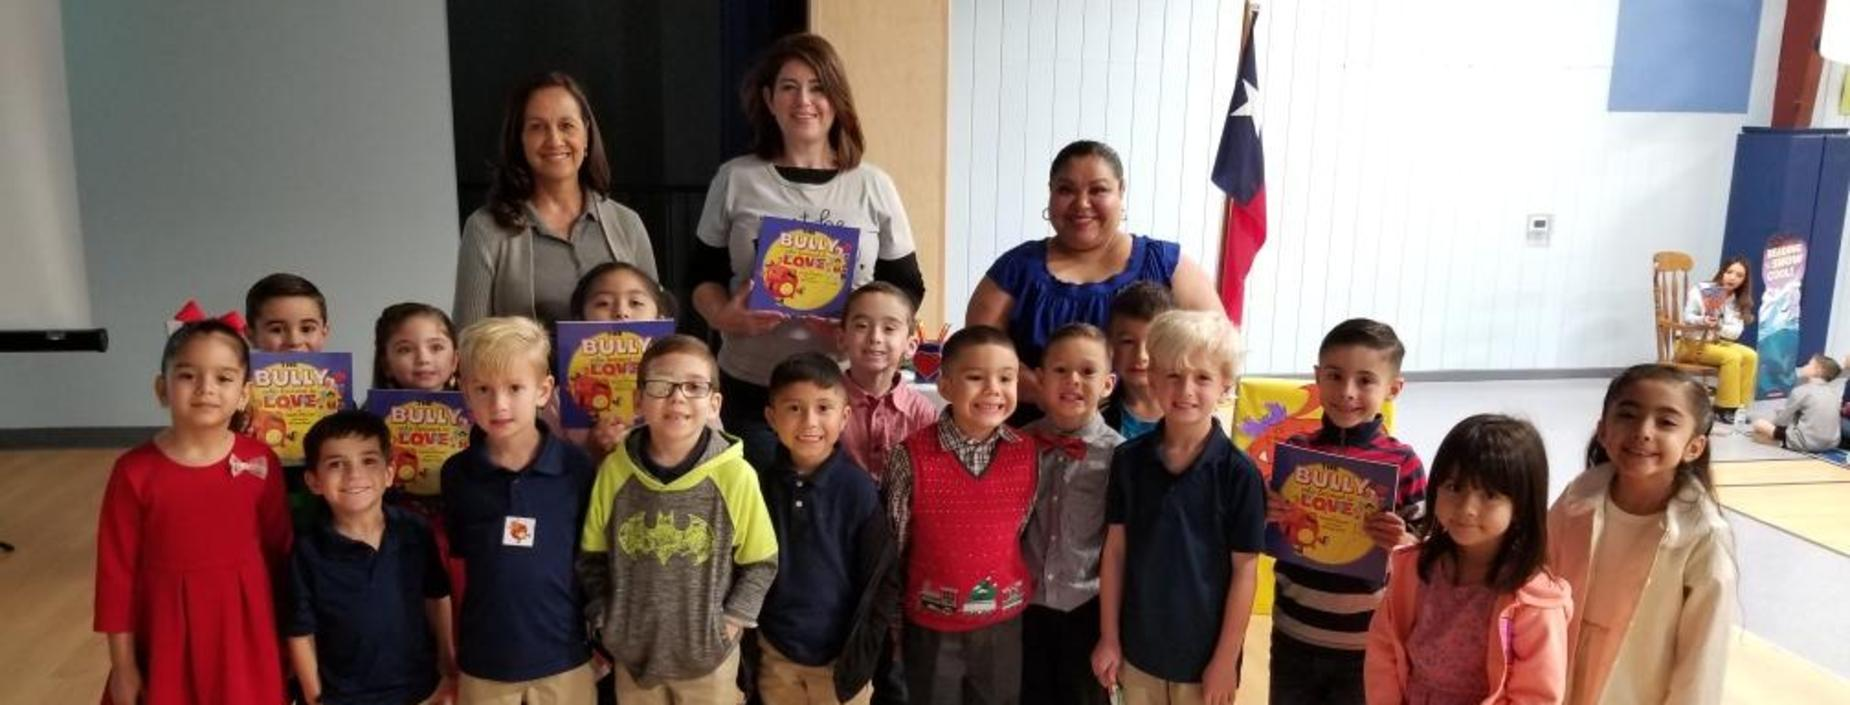 Author visit with students